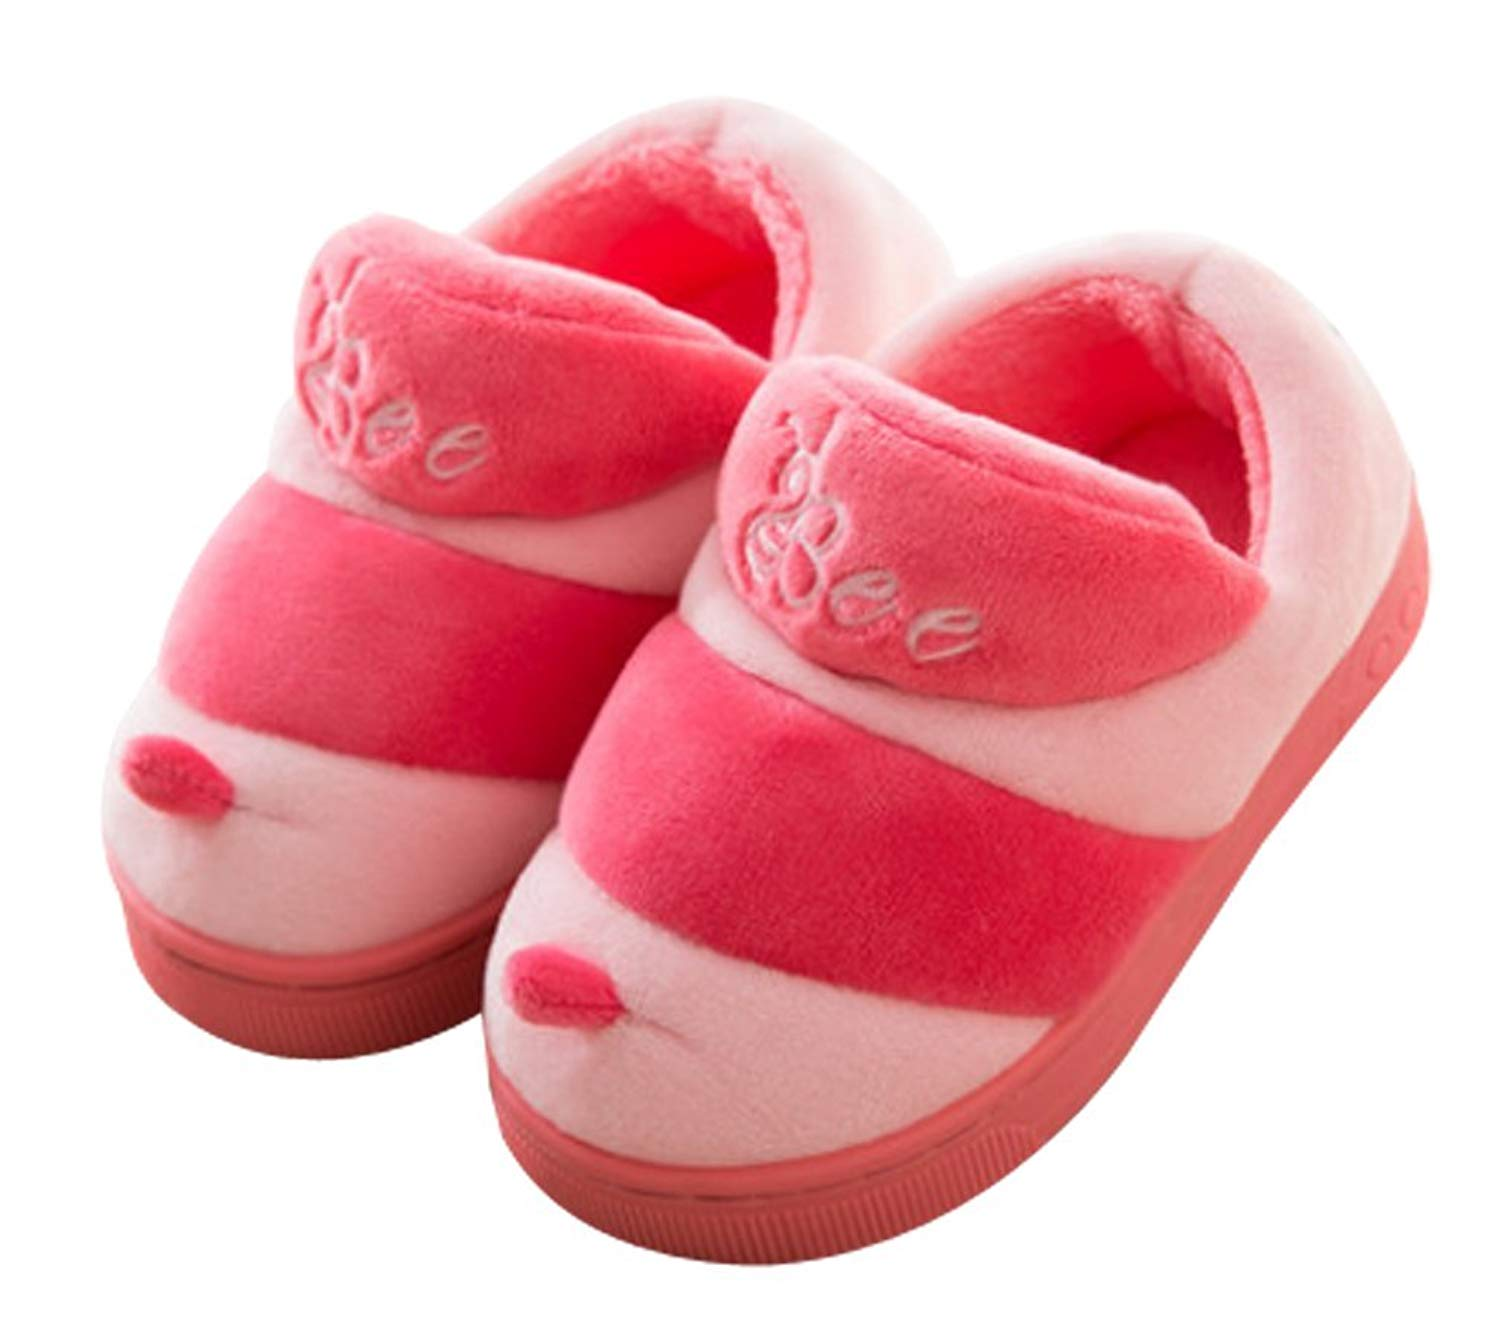 1e10a431c83fd Get Quotations · Cattior Toddler Coral Warm House Indoor Fluffy Boot  Slippers